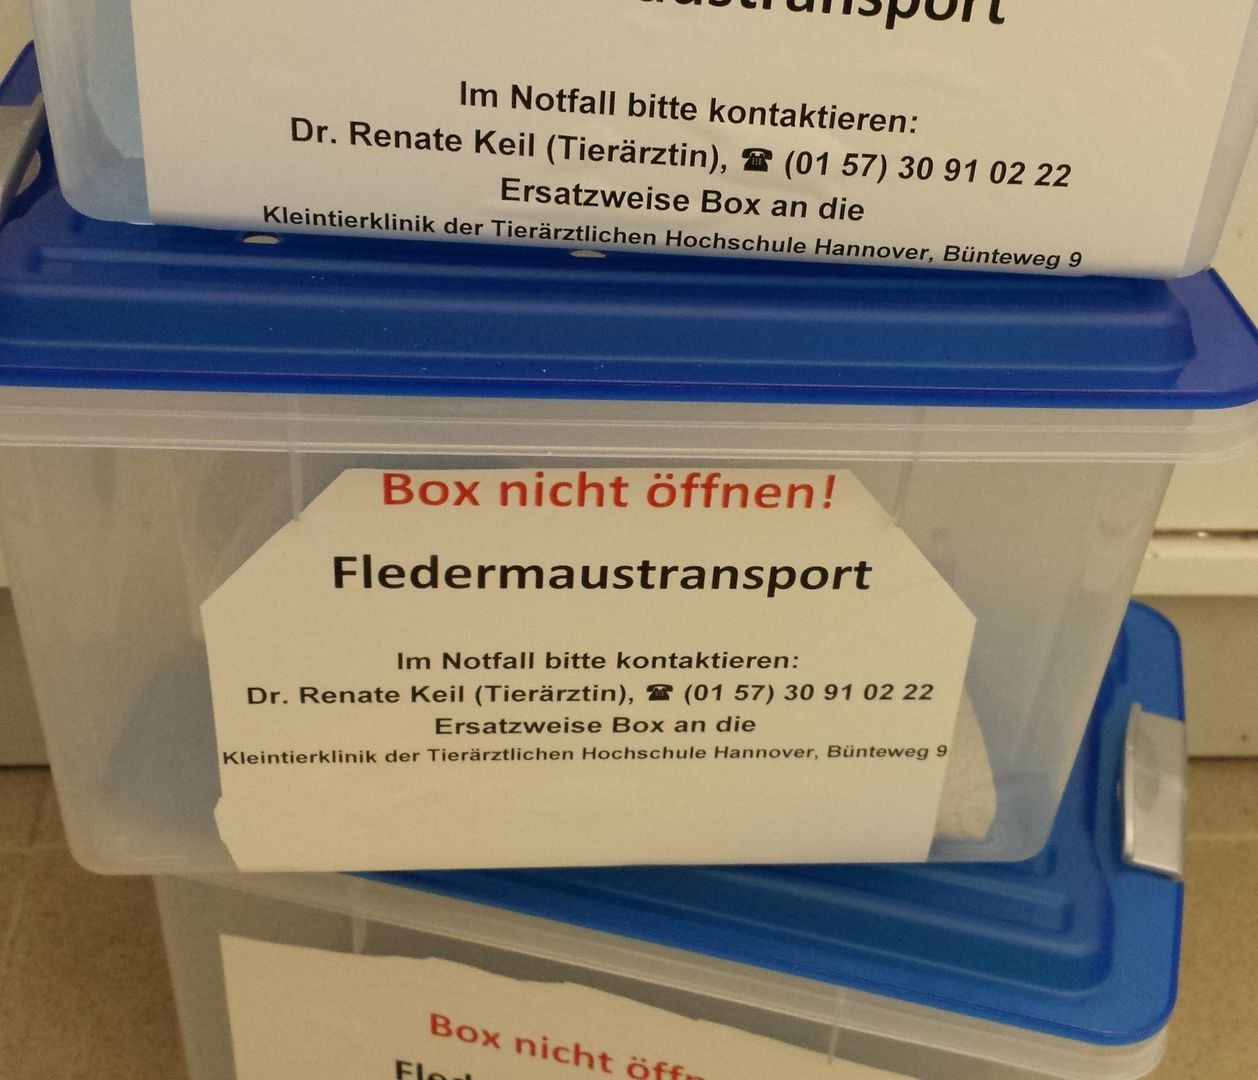 Das Foto zeigt Transportboxen für Fledermäuse, die mit der Notfalladresse beschriftet sind. // the photo shows transport boxes for bats, adressed with the emergency destination.